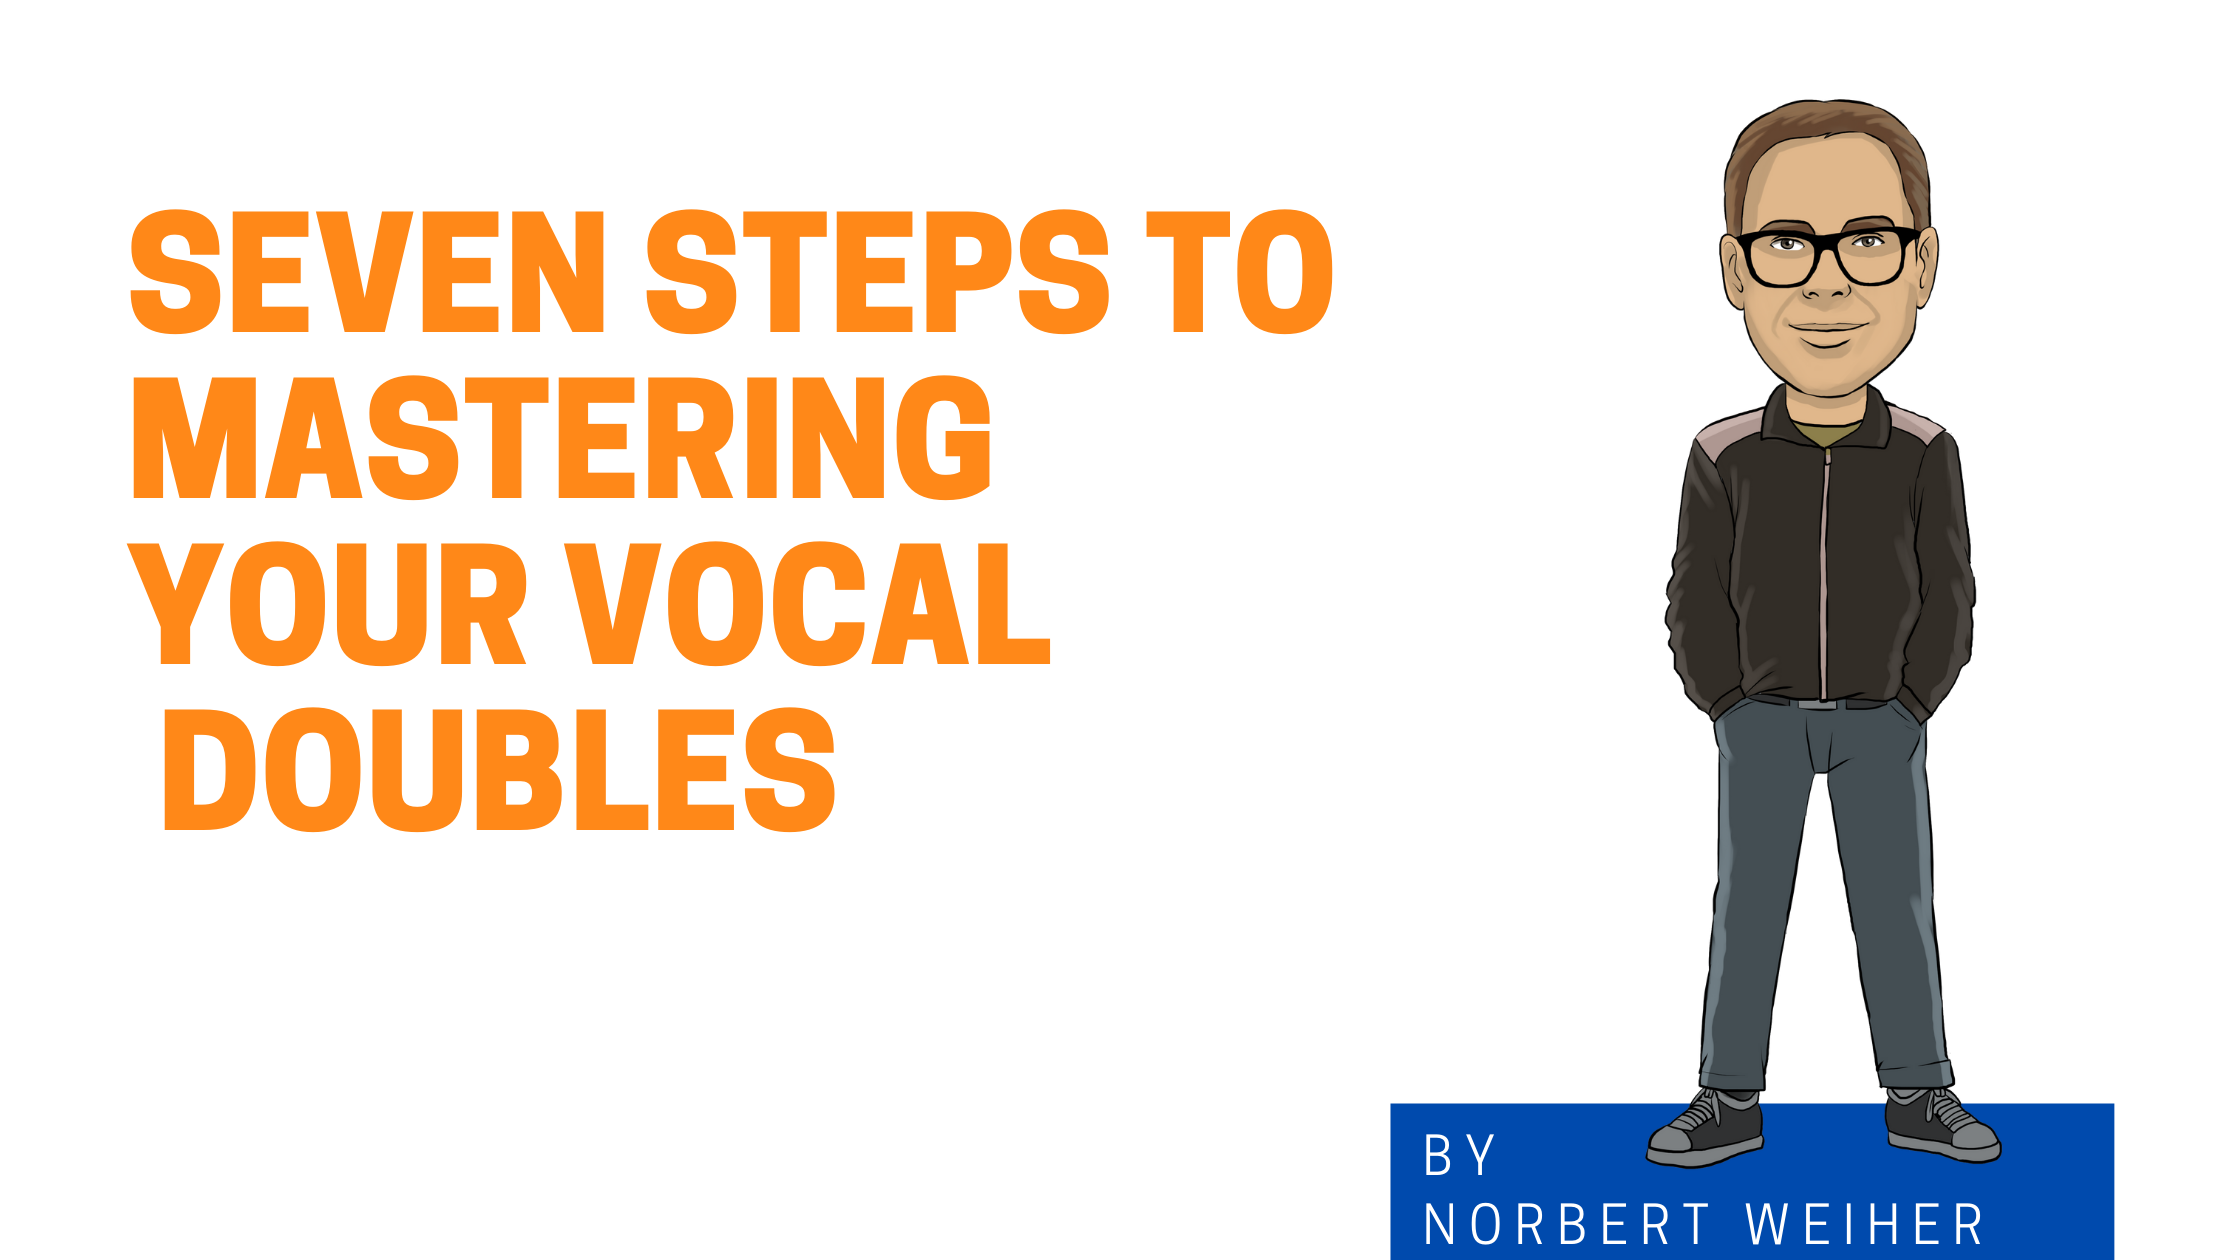 Seven Steps to Mastering Your Vocal Doubles